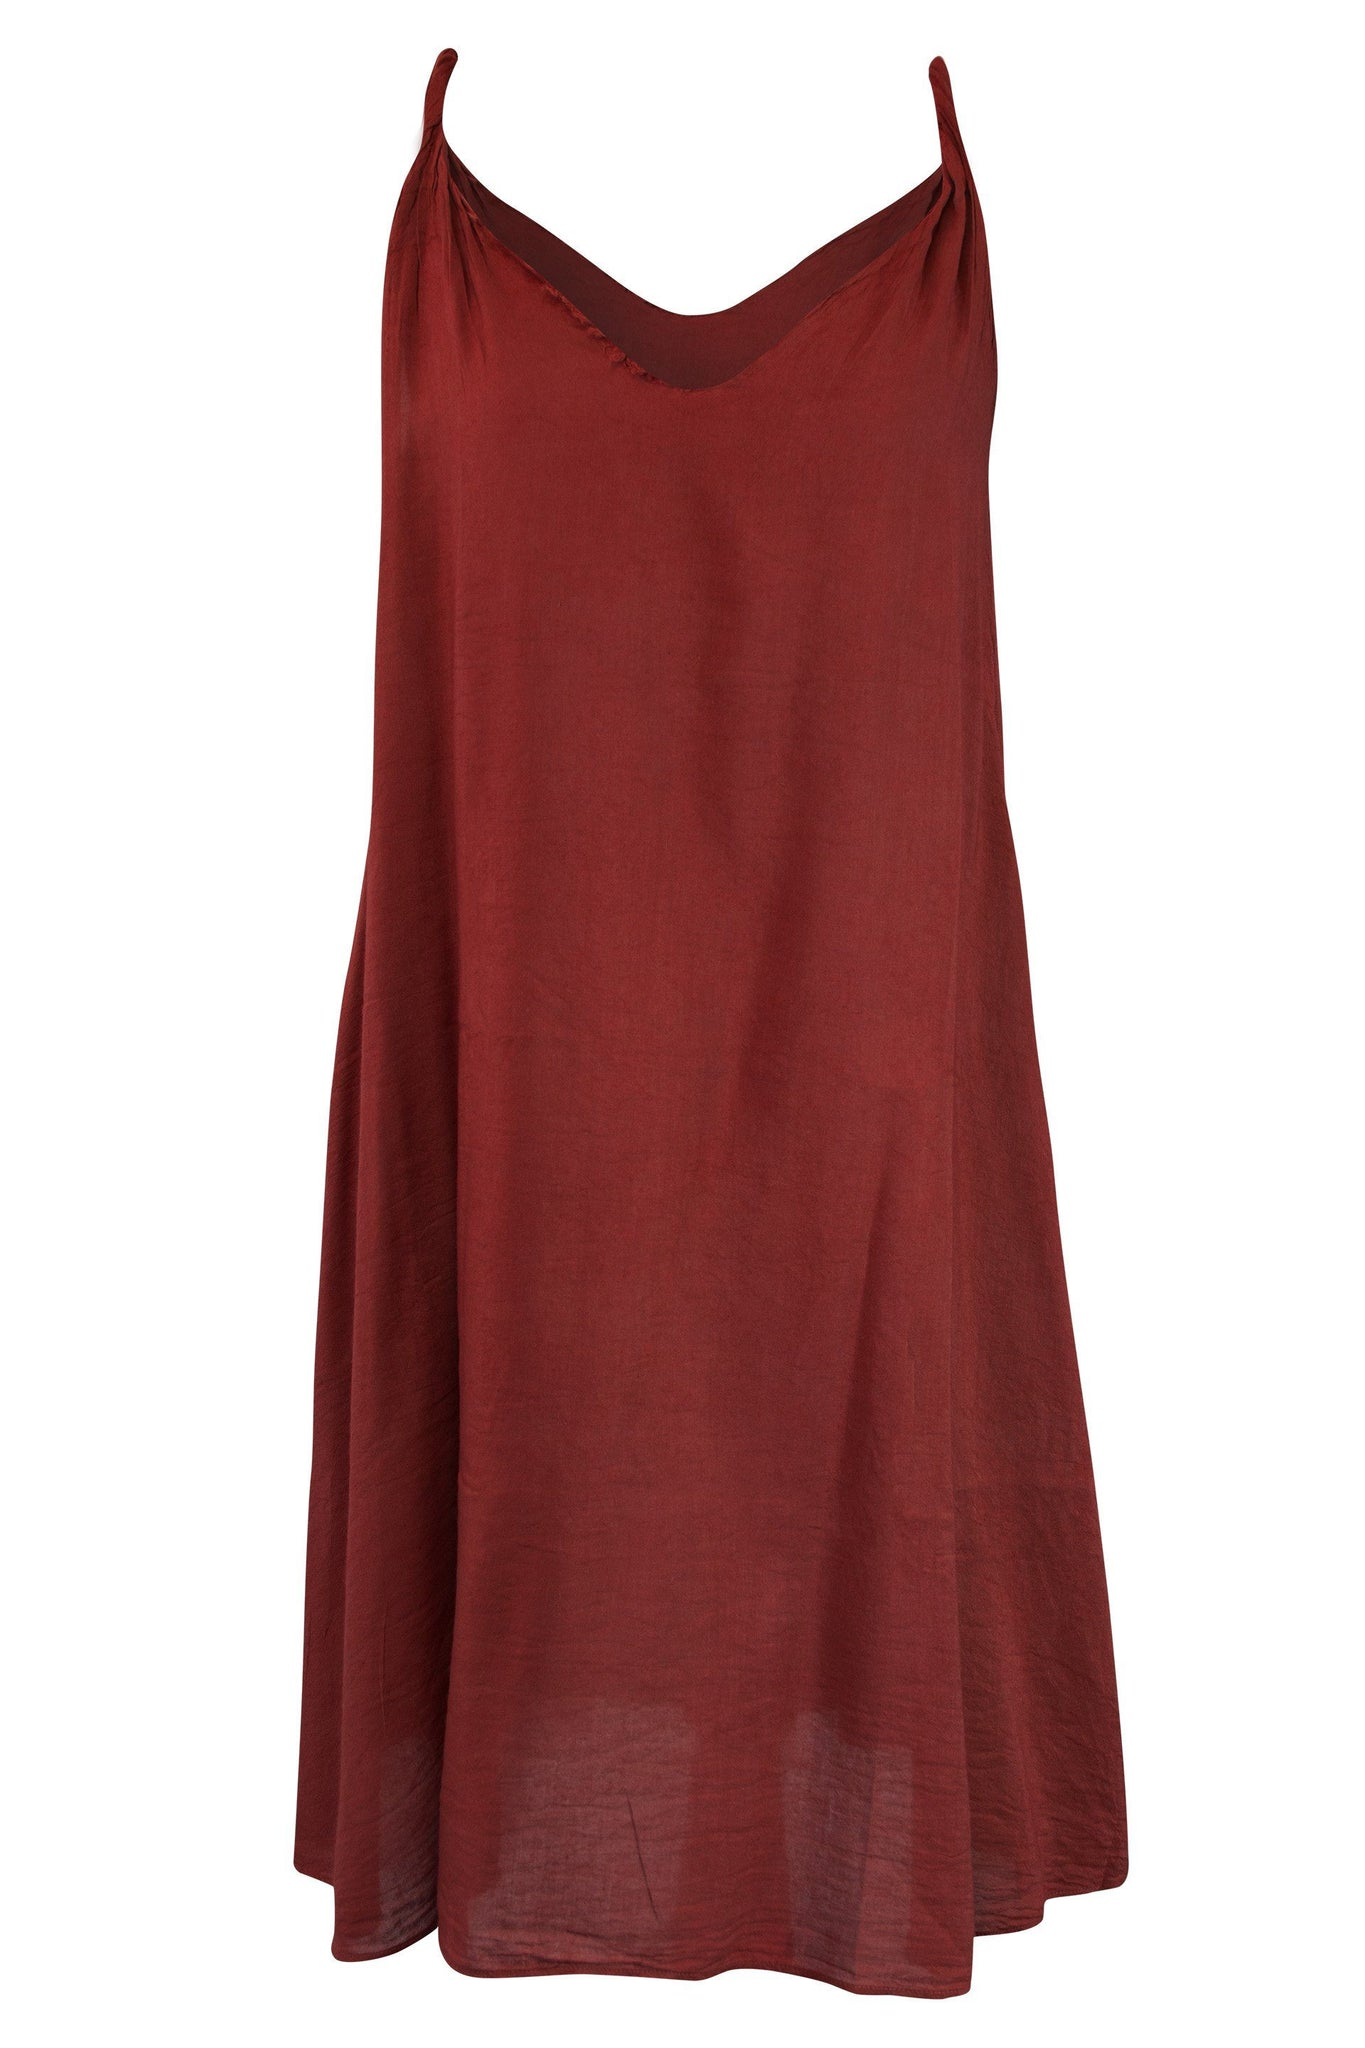 Cotton Camisole Dress V Neck A Line - CCCollections